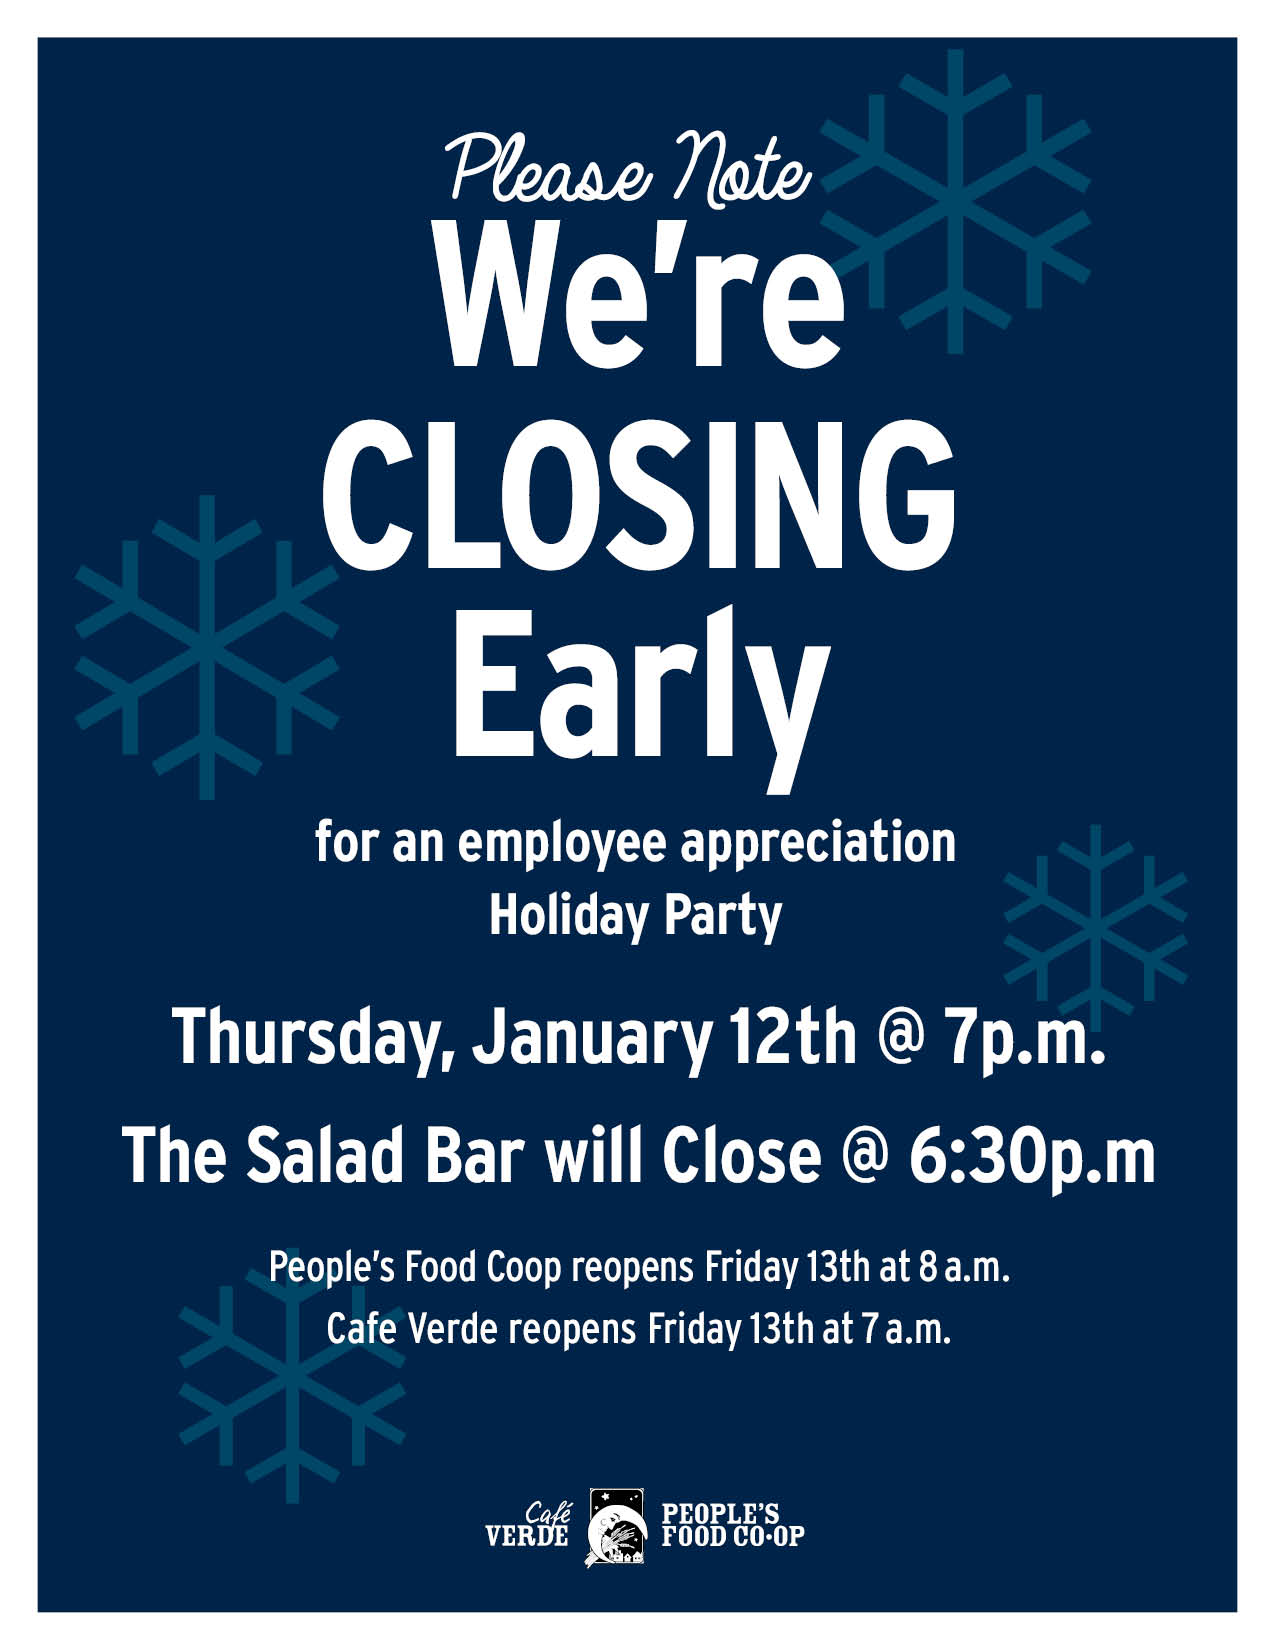 Staff Holiday Party Store Hours